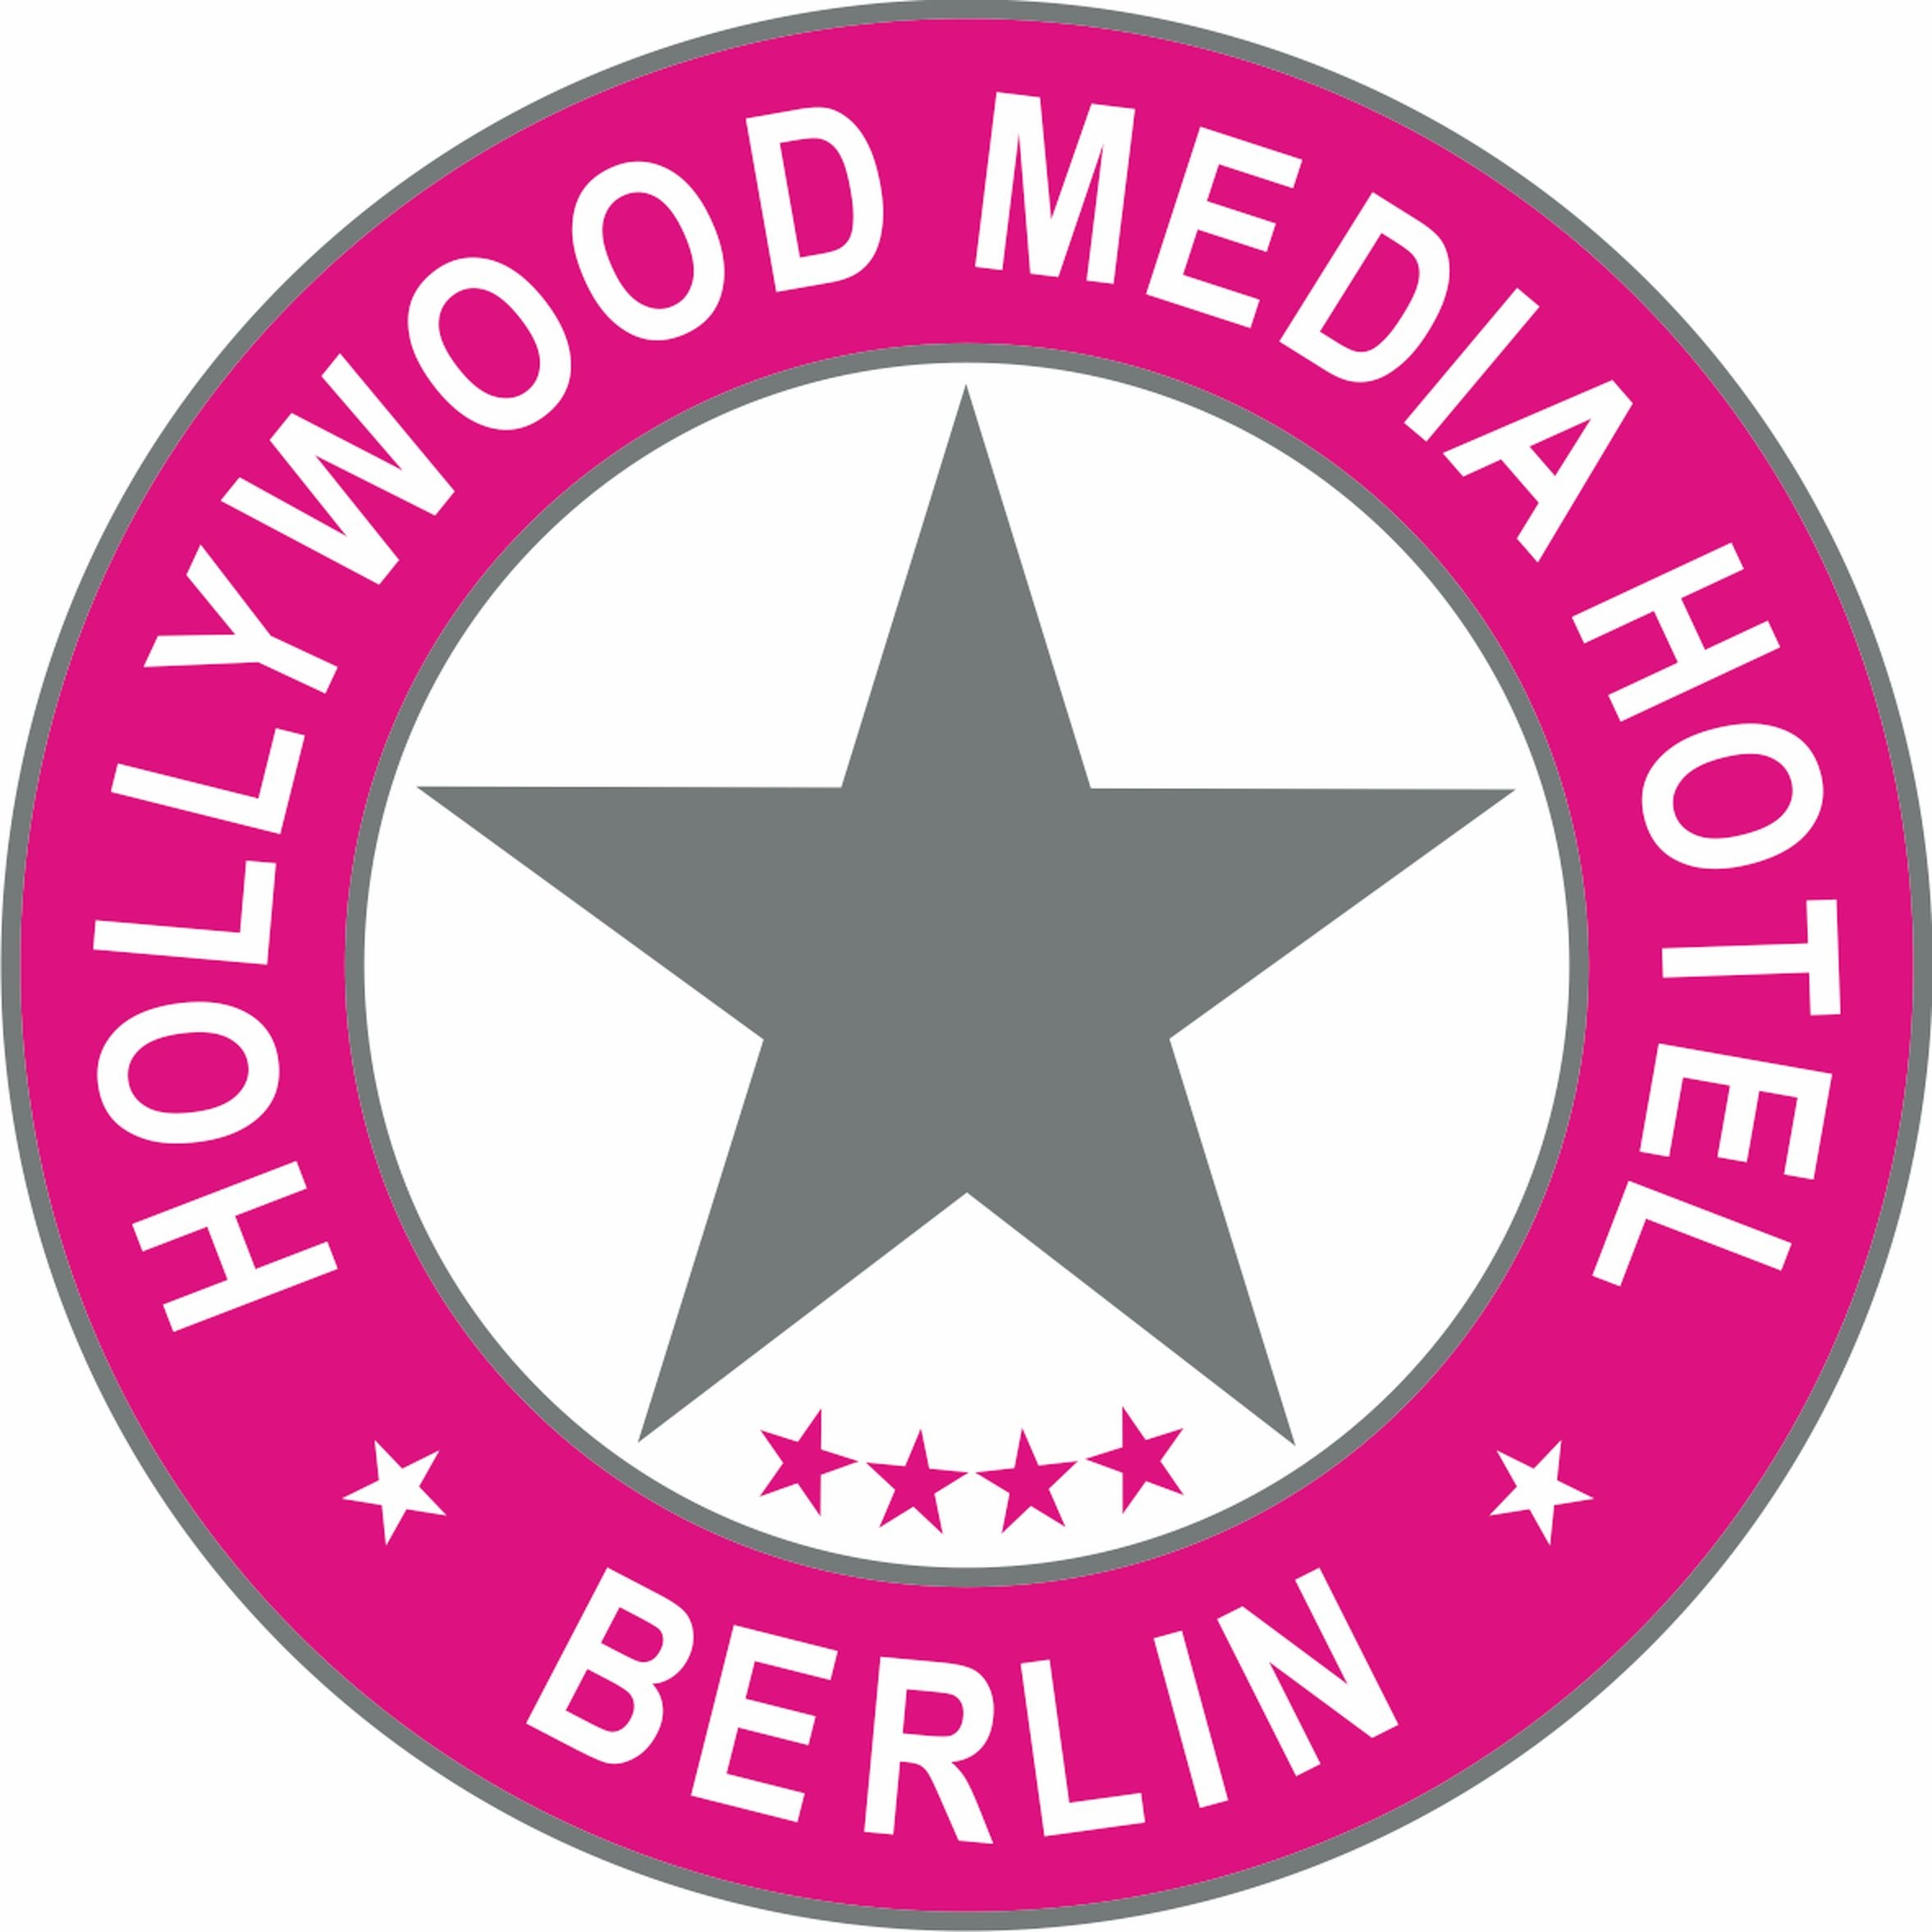 Hollywood Media Hotel Logo